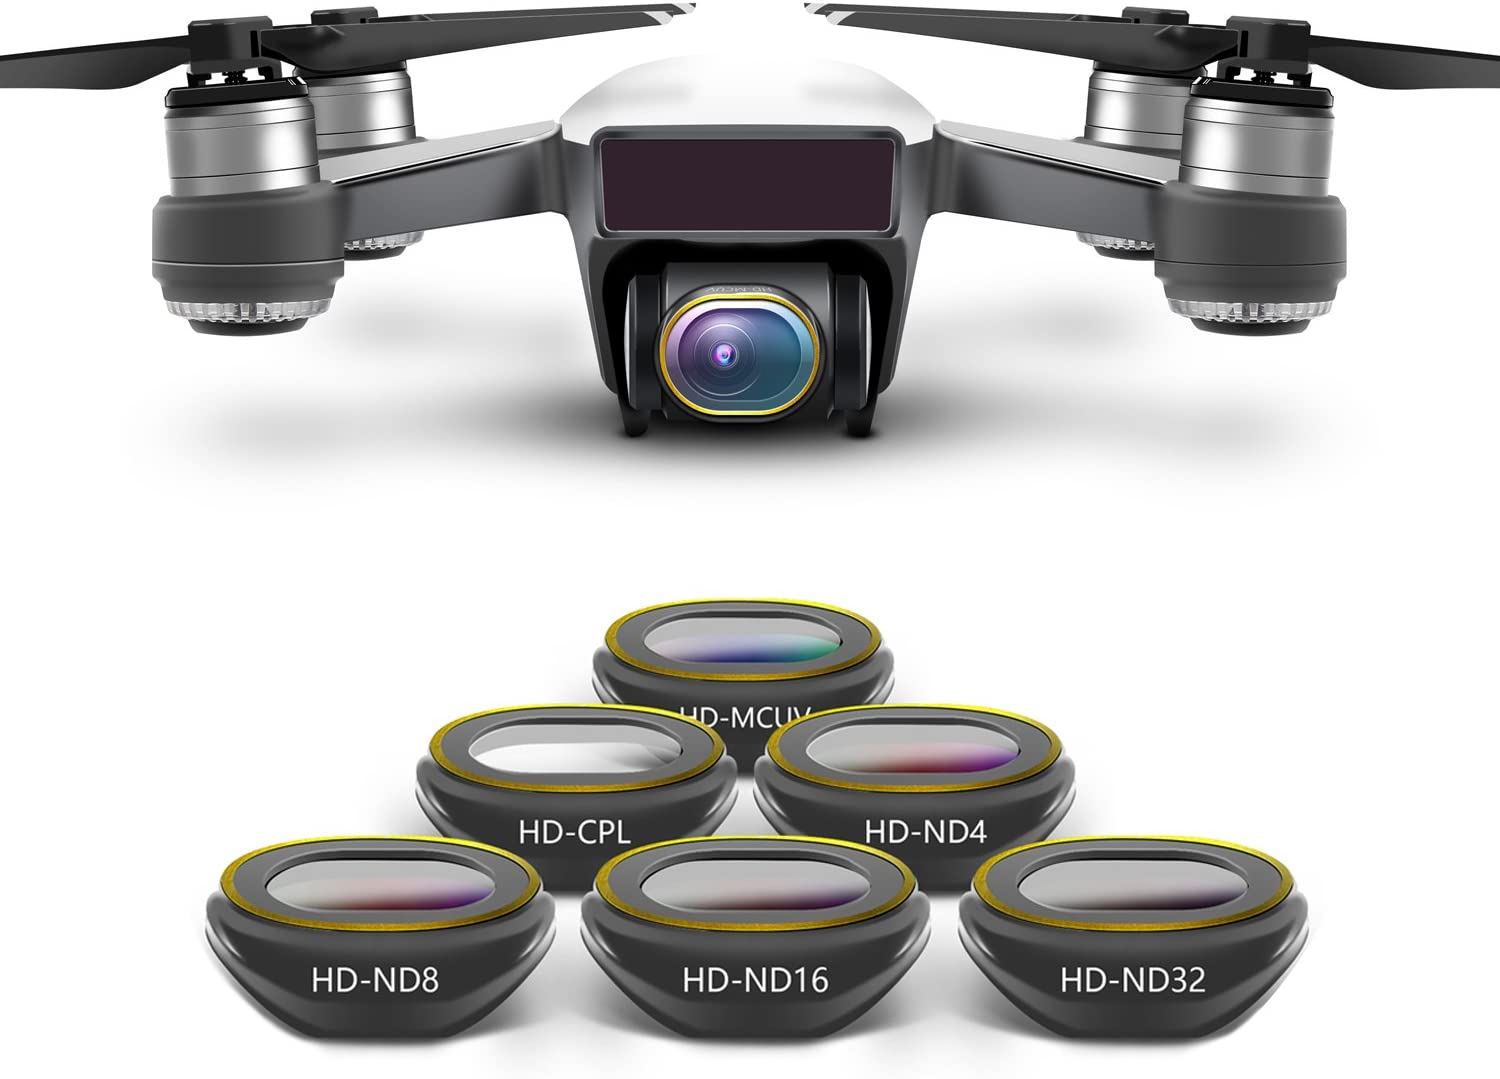 MCUV//CPL//ND4//ND8//ND16//ND32 for DJI Spark Gimbal Camera Lens Filter Combo ND4 ND8 ND16 ND32 MCUV CPL for HD Clear Lens Filte for DJI Spark Drone